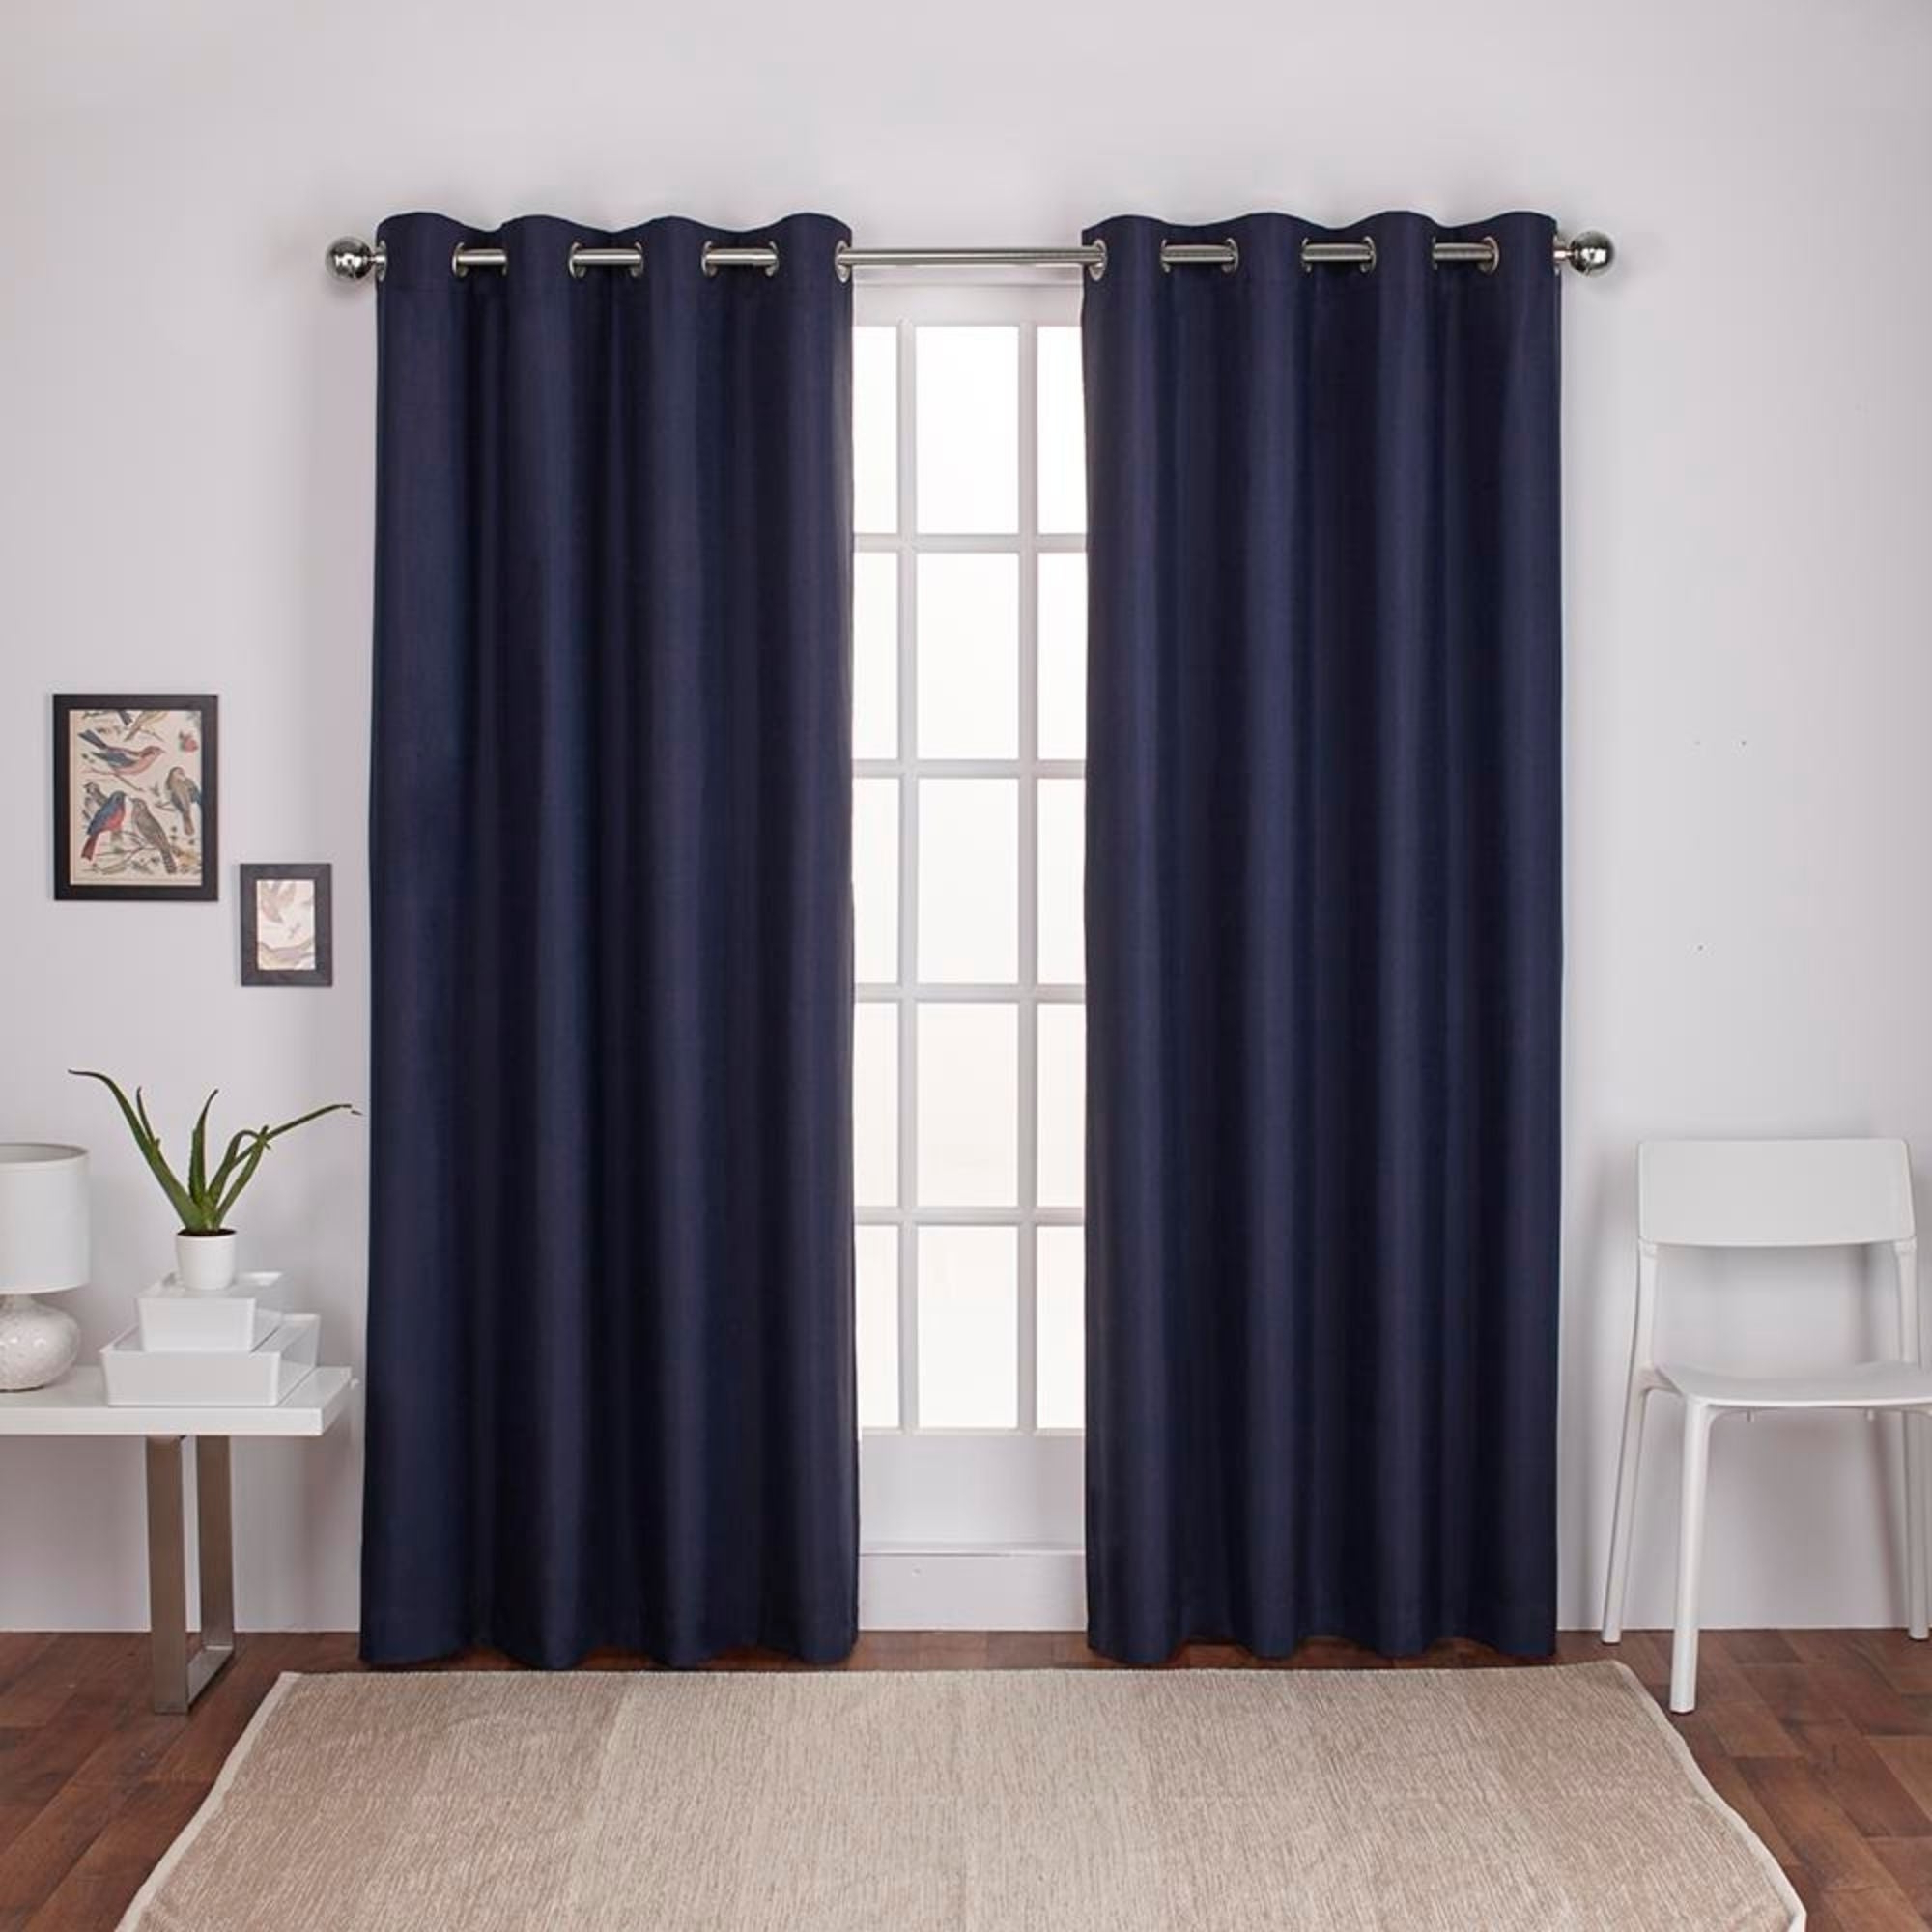 Newest Thermal Textured Linen Grommet Top Curtain Panel Pairs Regarding Shop Strick & Bolton Lewitt Thermal Textured Linen Grommet (View 11 of 20)